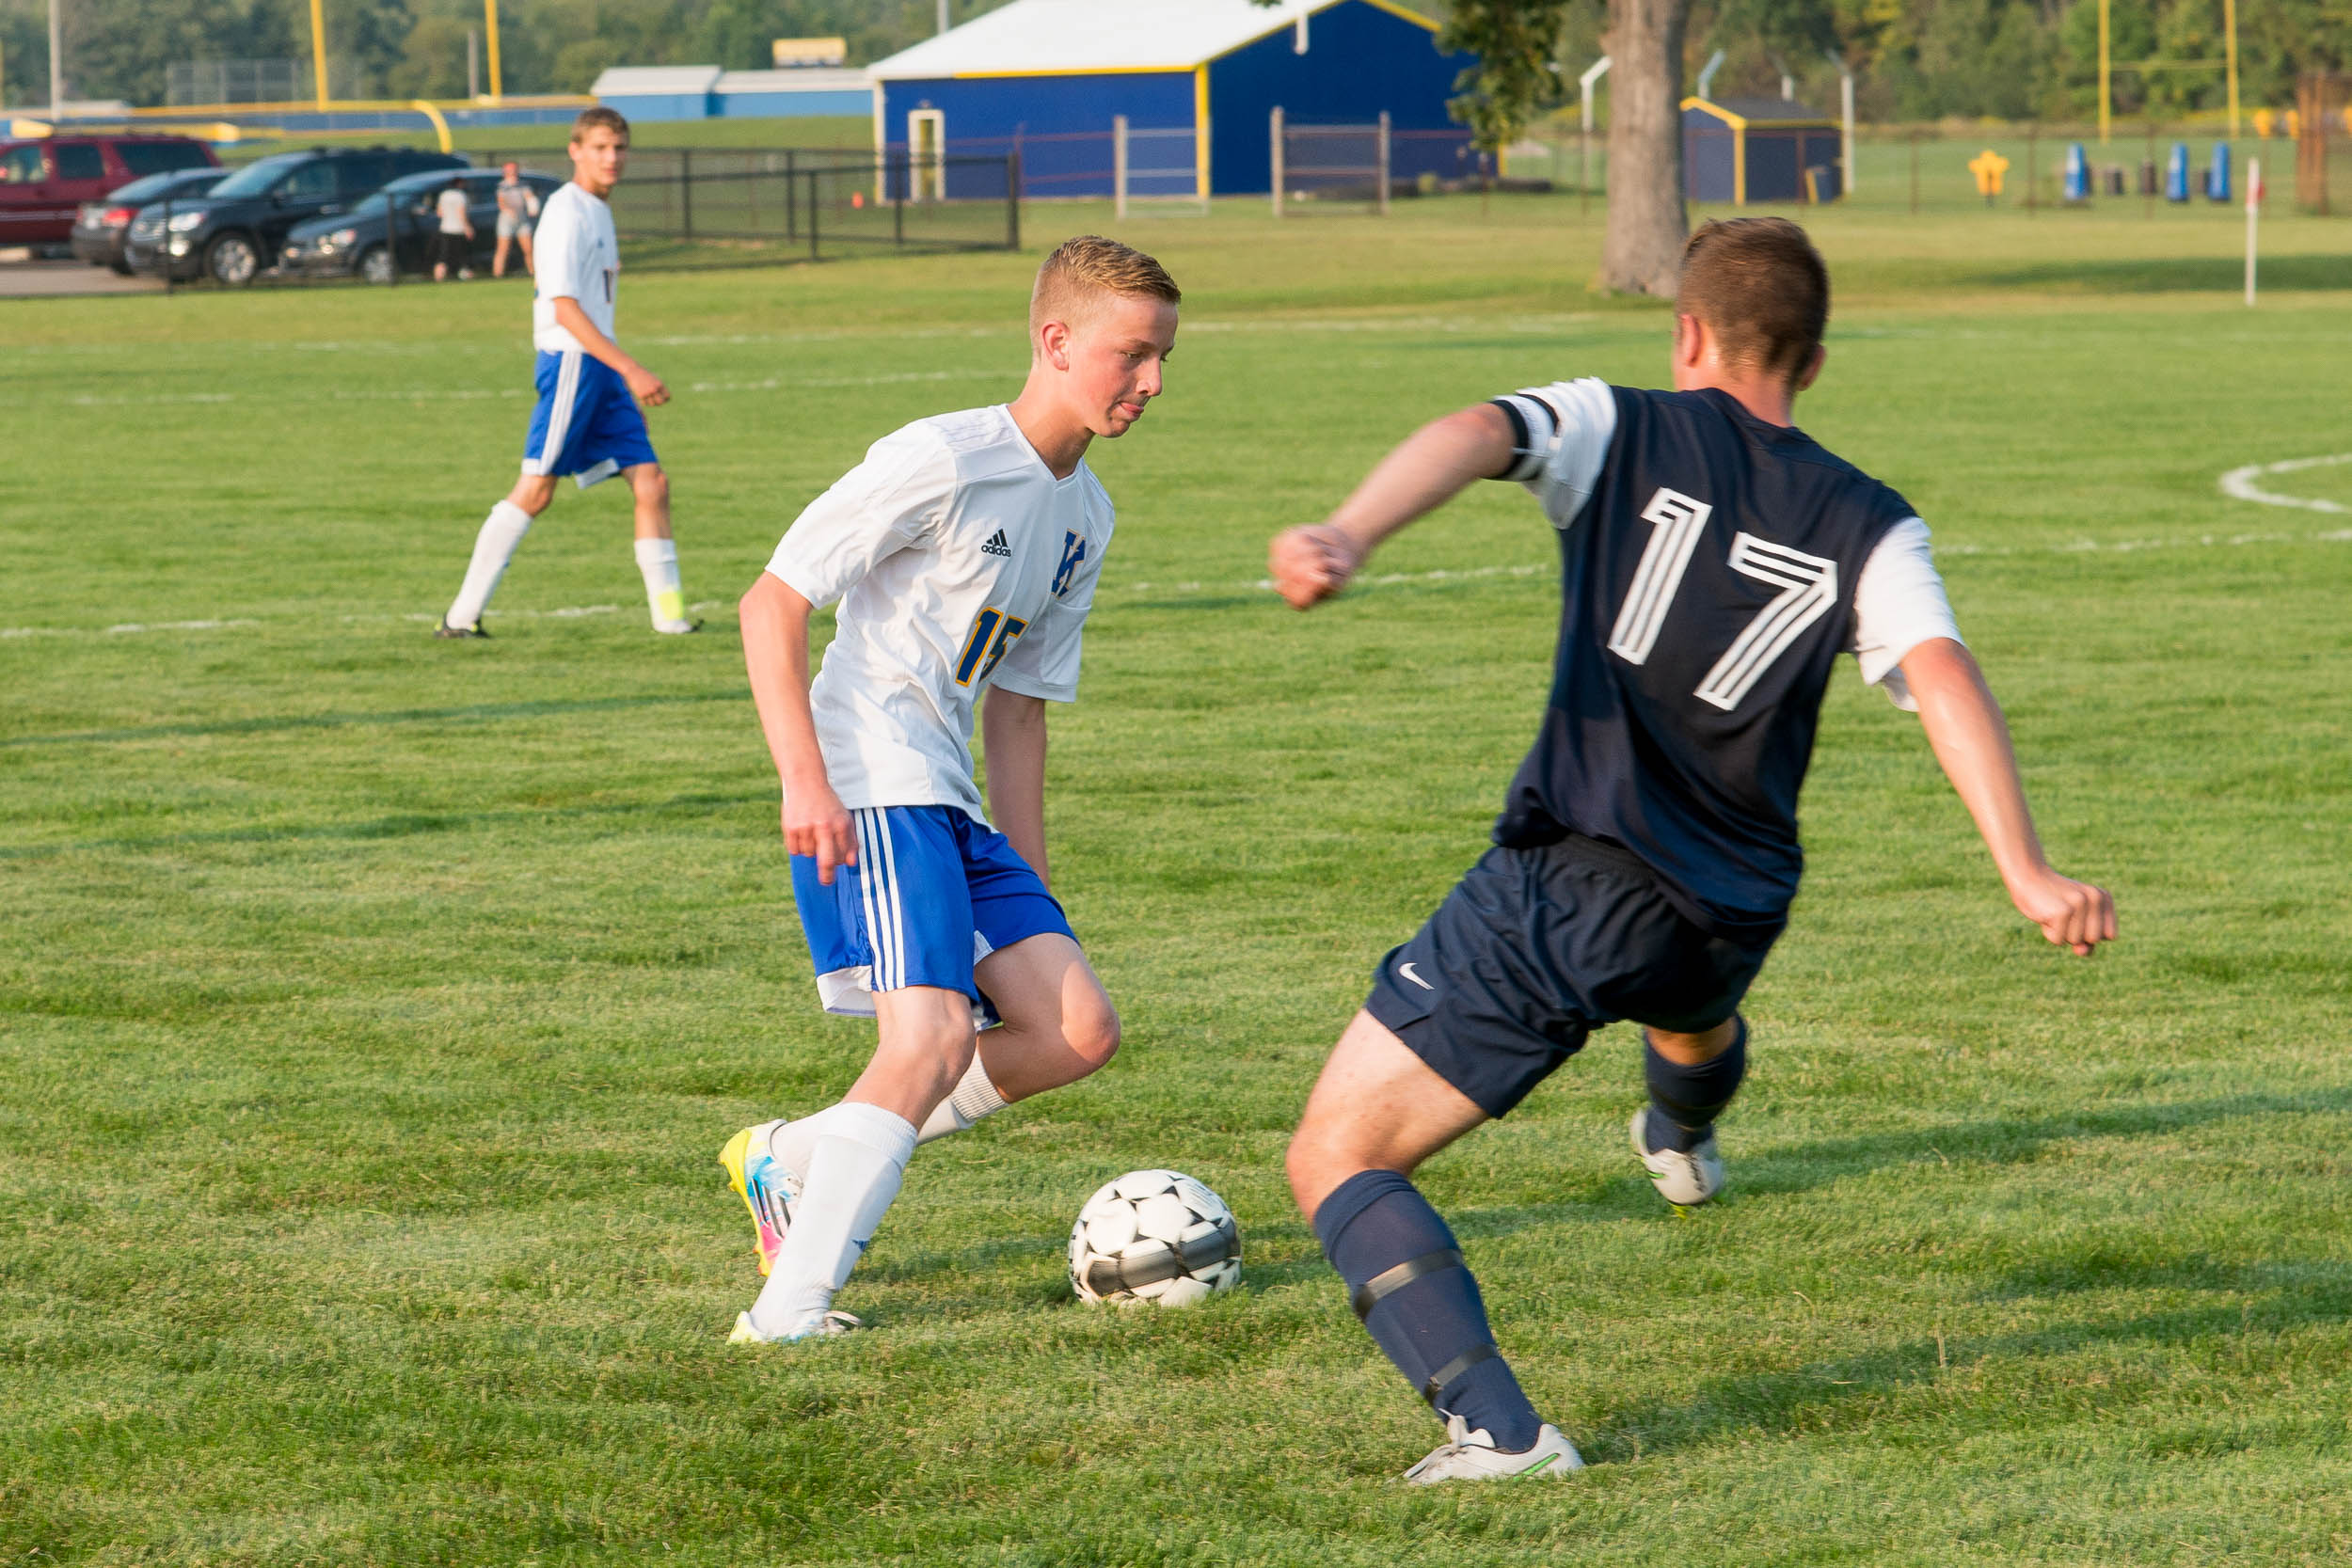 Andy Ruhstorfer named Flint Metro League Scholar-Athlete of the Month